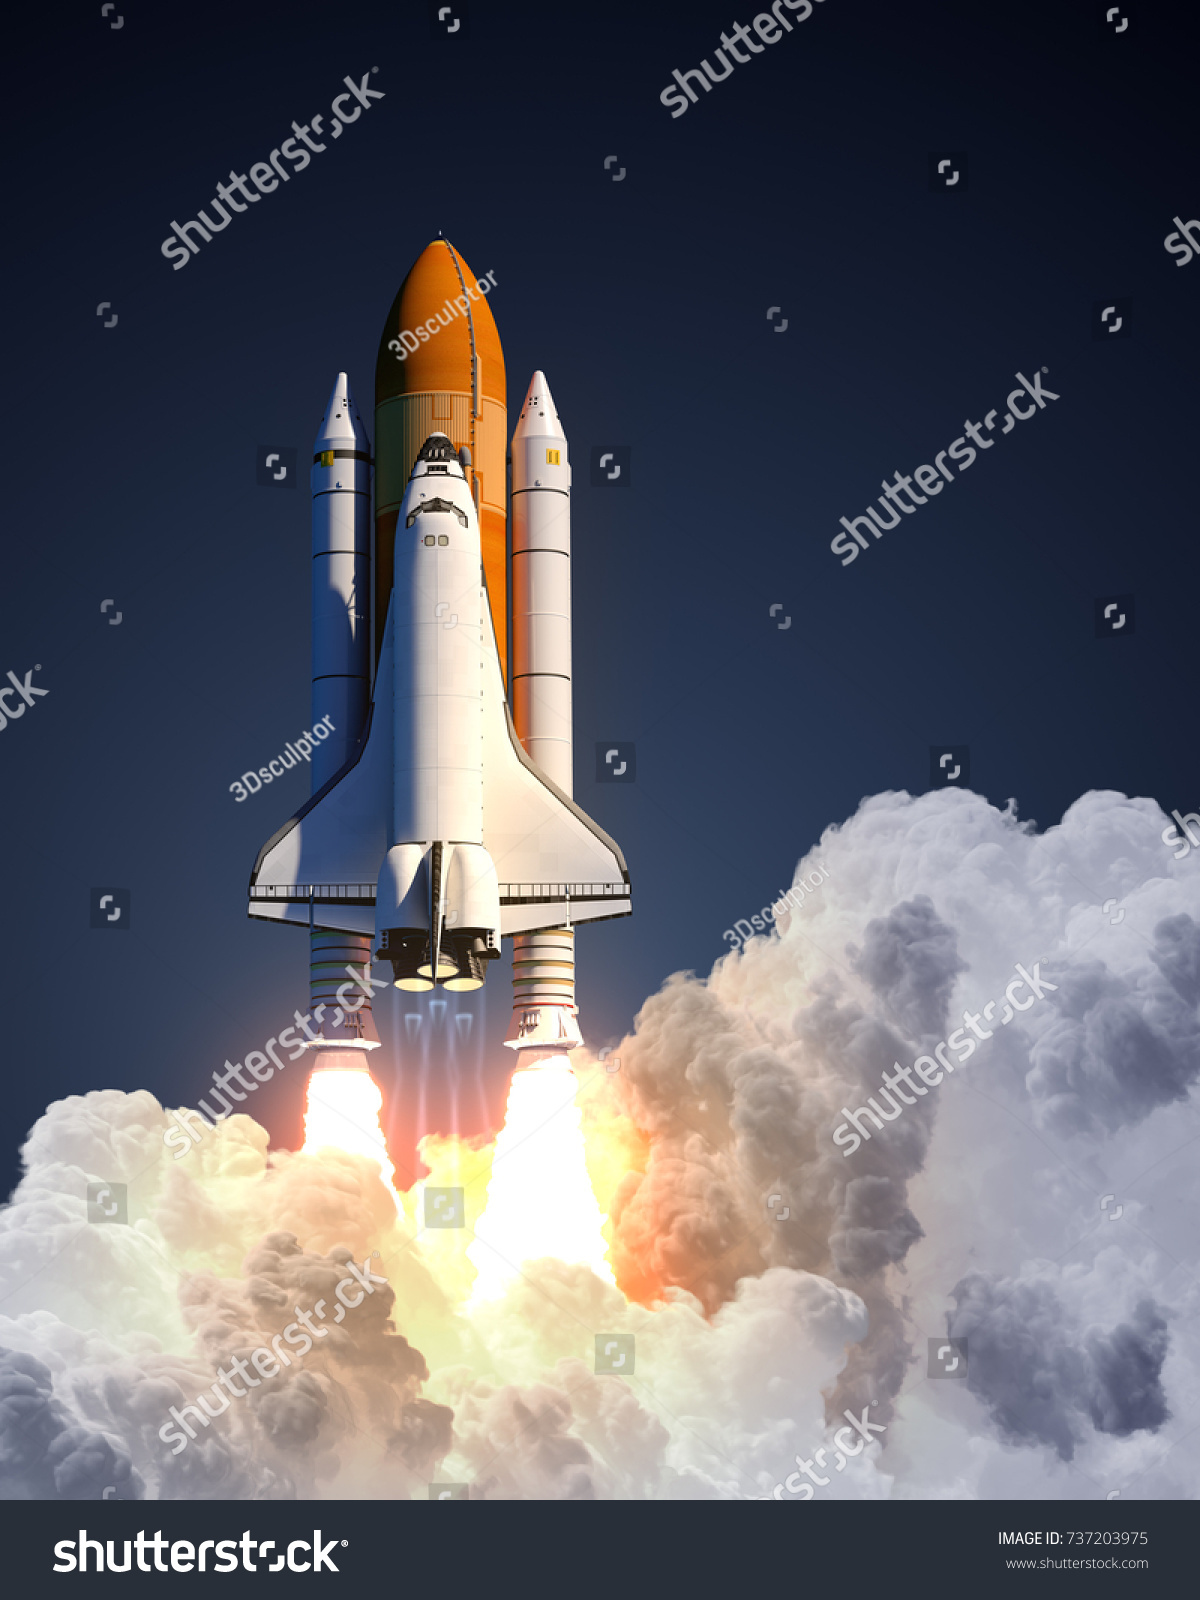 new space shuttle illustration - photo #14